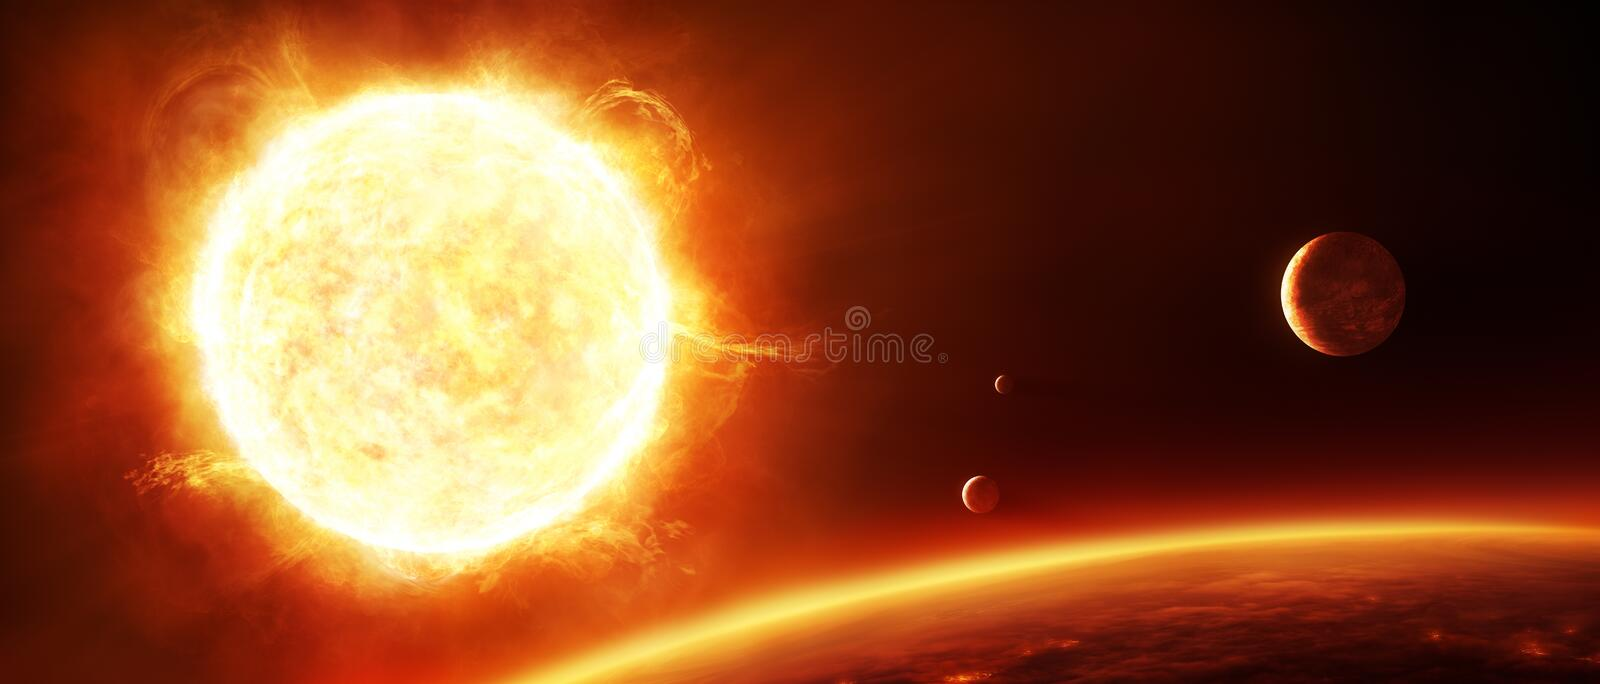 Big sun with planets vector illustration